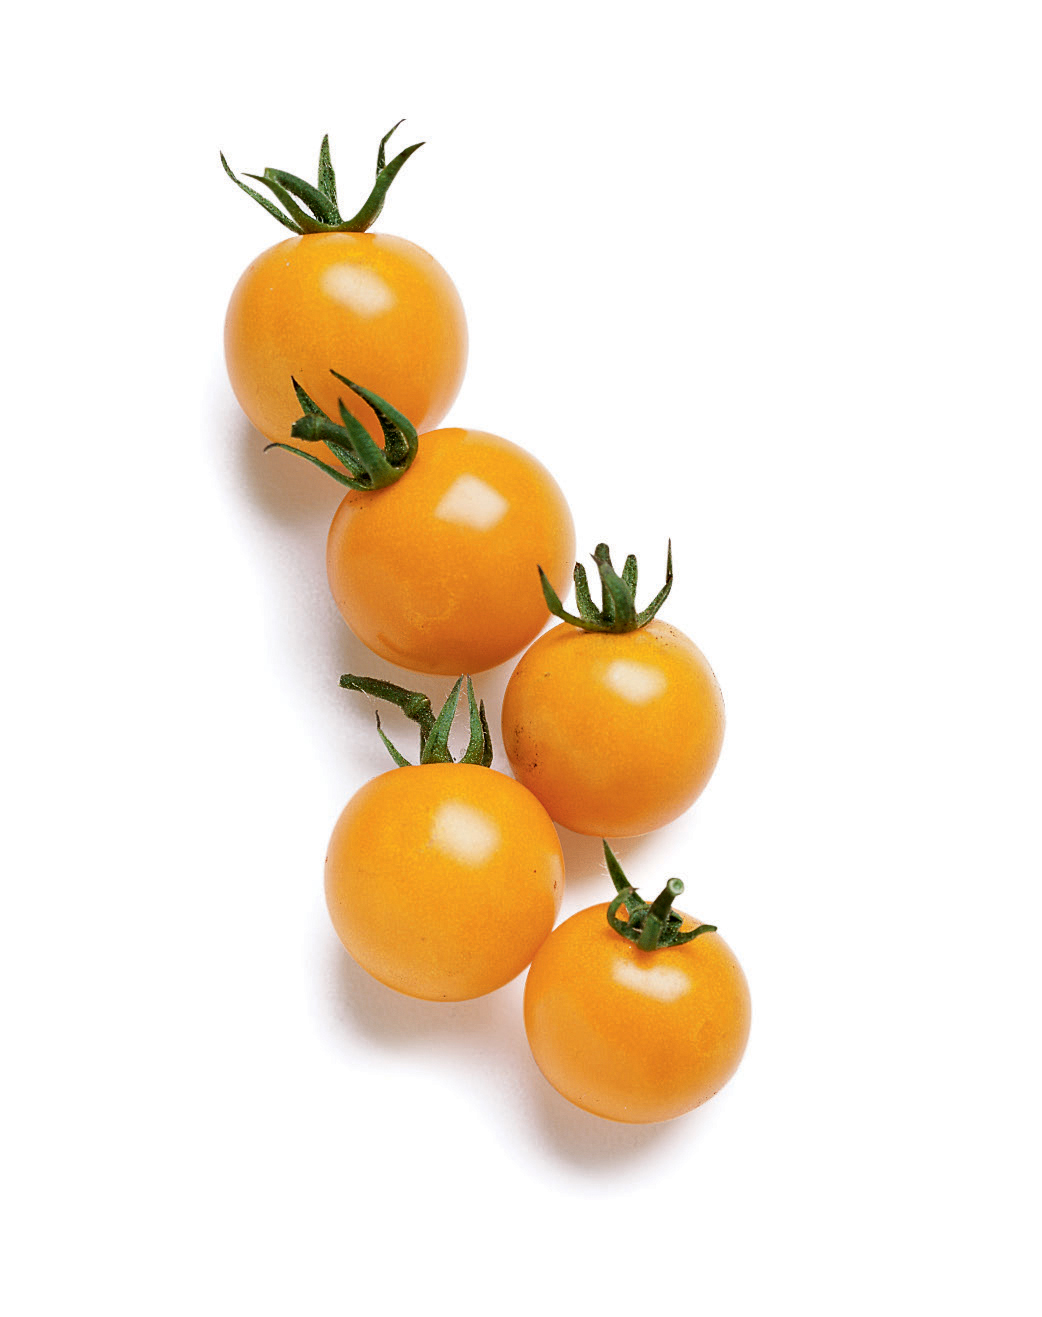 5 Best Cherry Tomatoes